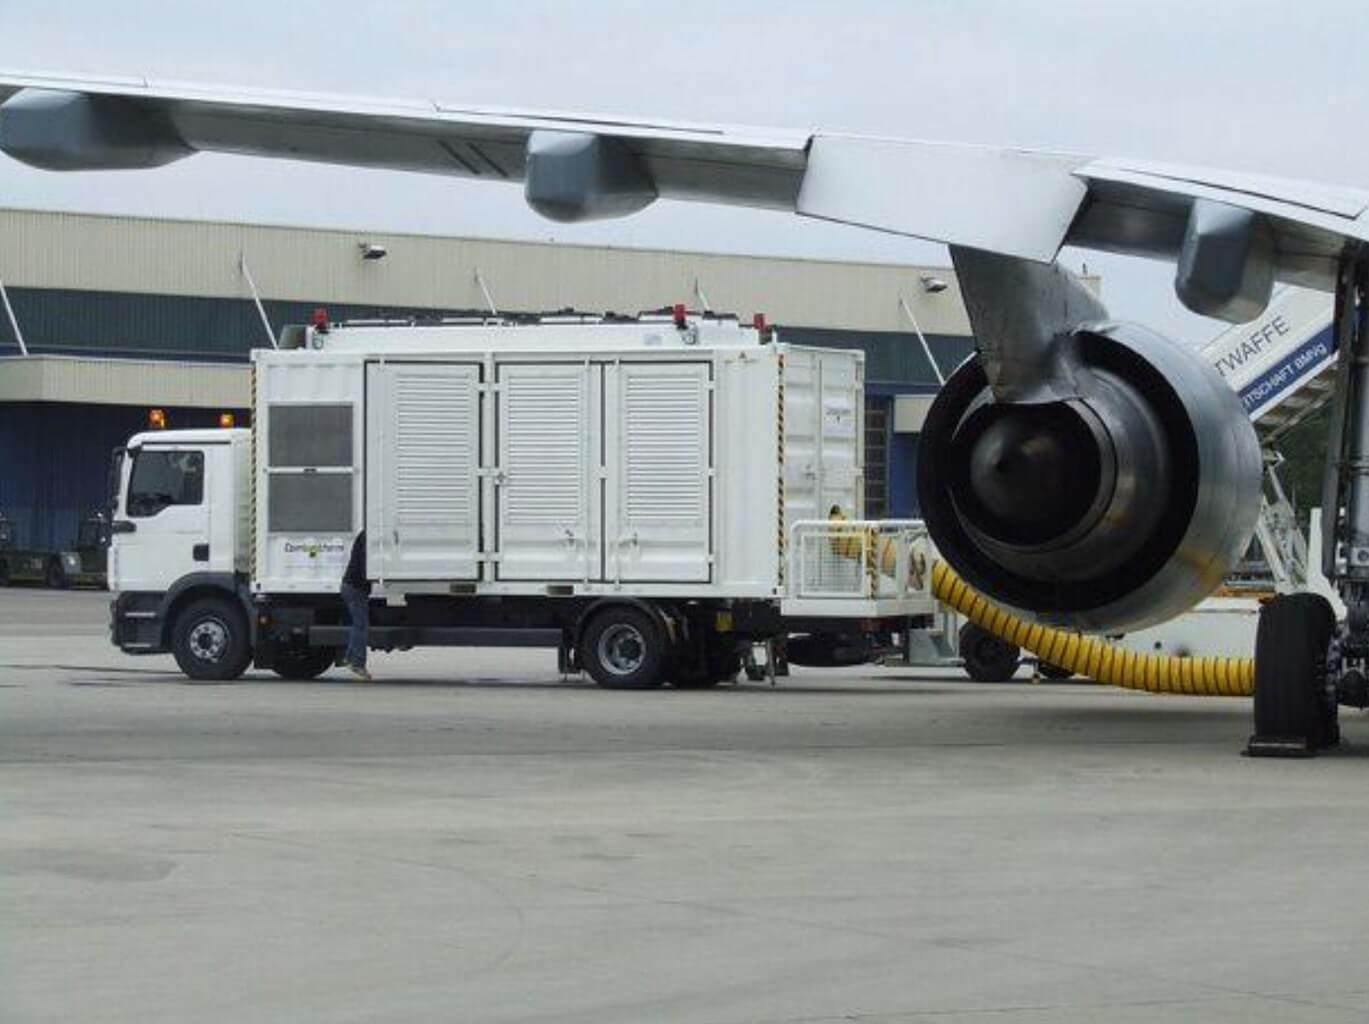 An industrial mobile power solution BES system refueling an airplane